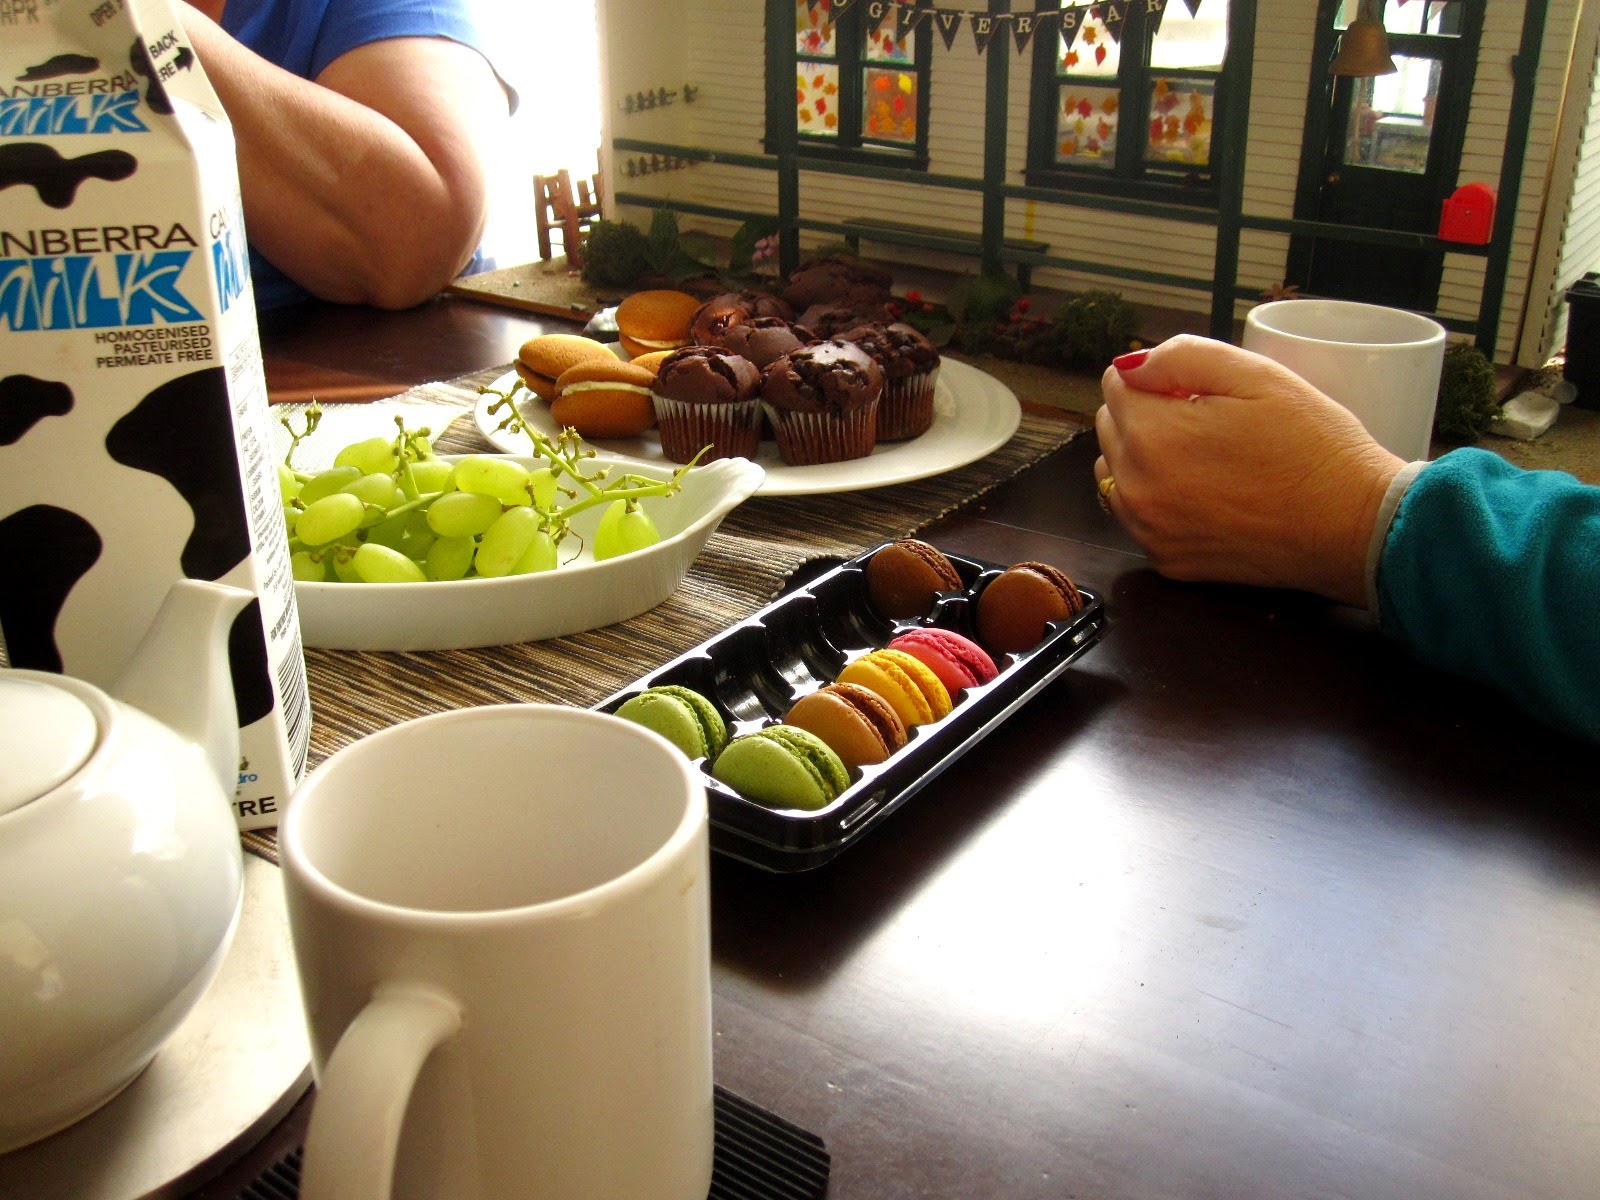 A selection of morning tea treats set out on a table in front of a modern miniatures dolls' house school